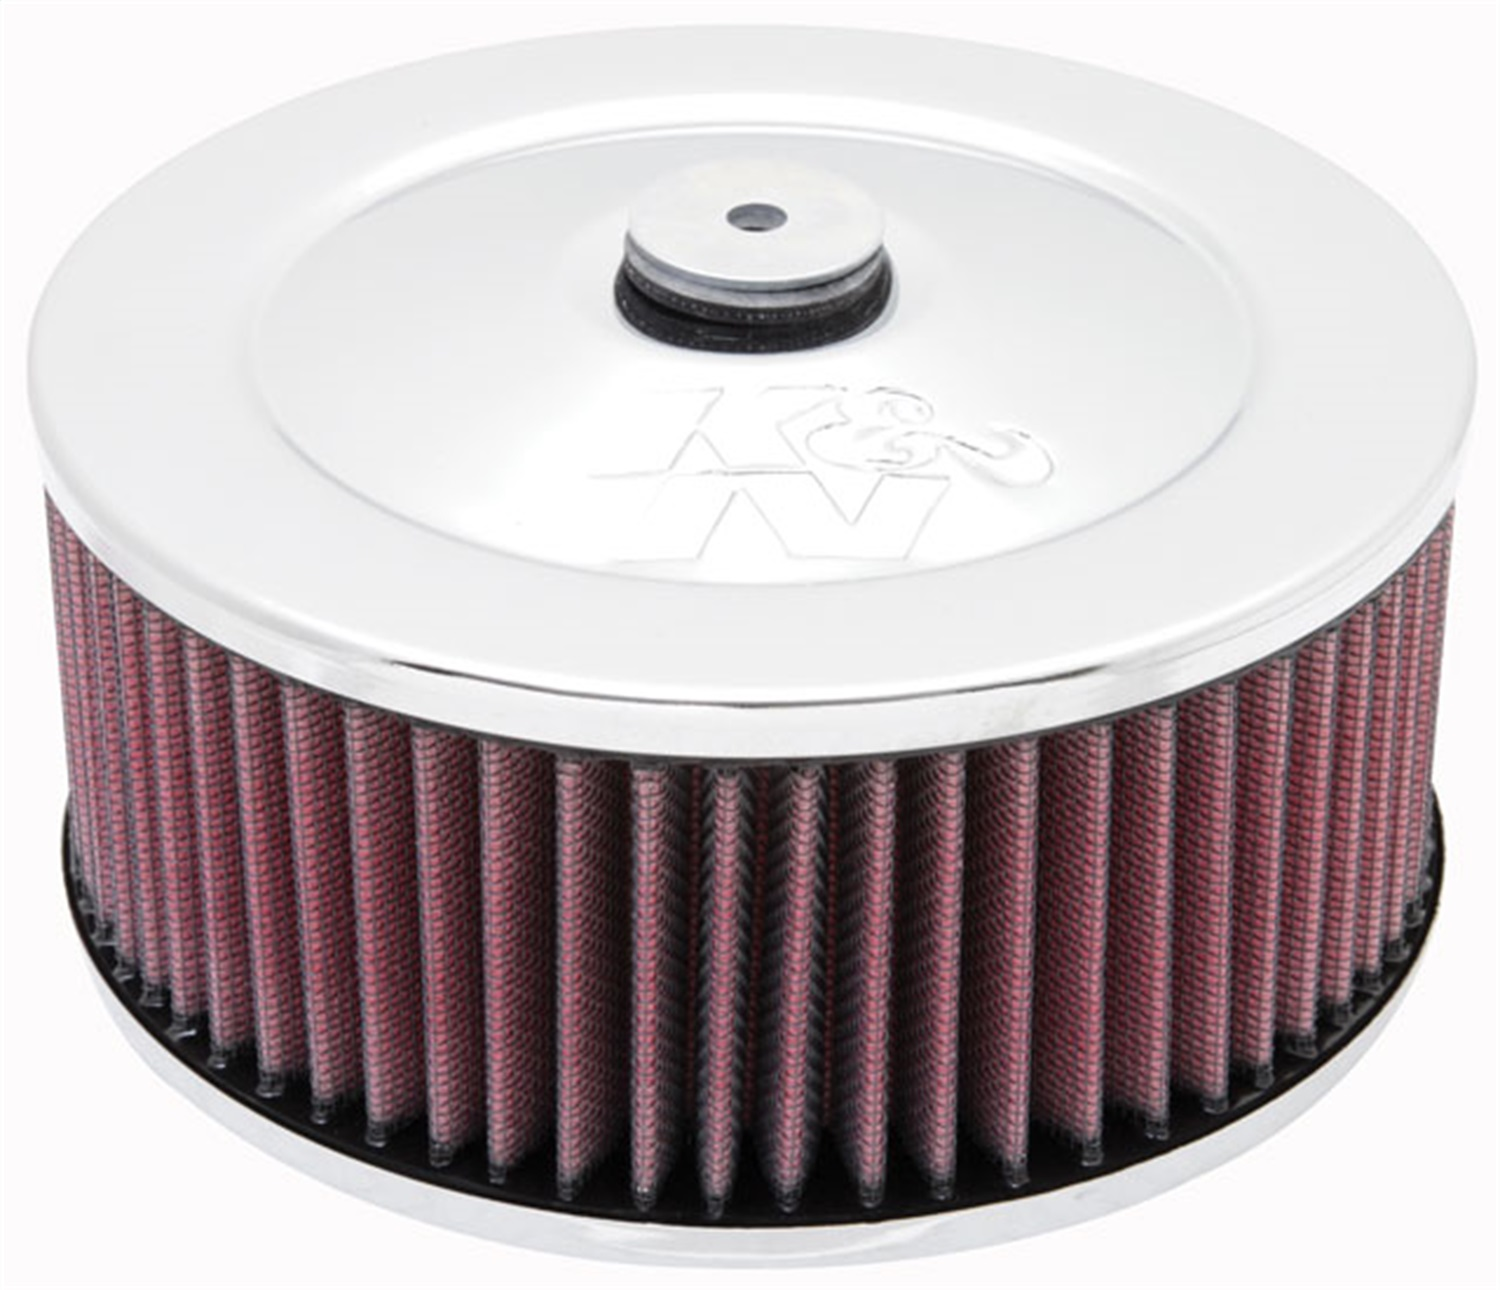 K&N Filters 60-1330 Custom Air Cleaner Assembly 60-1330